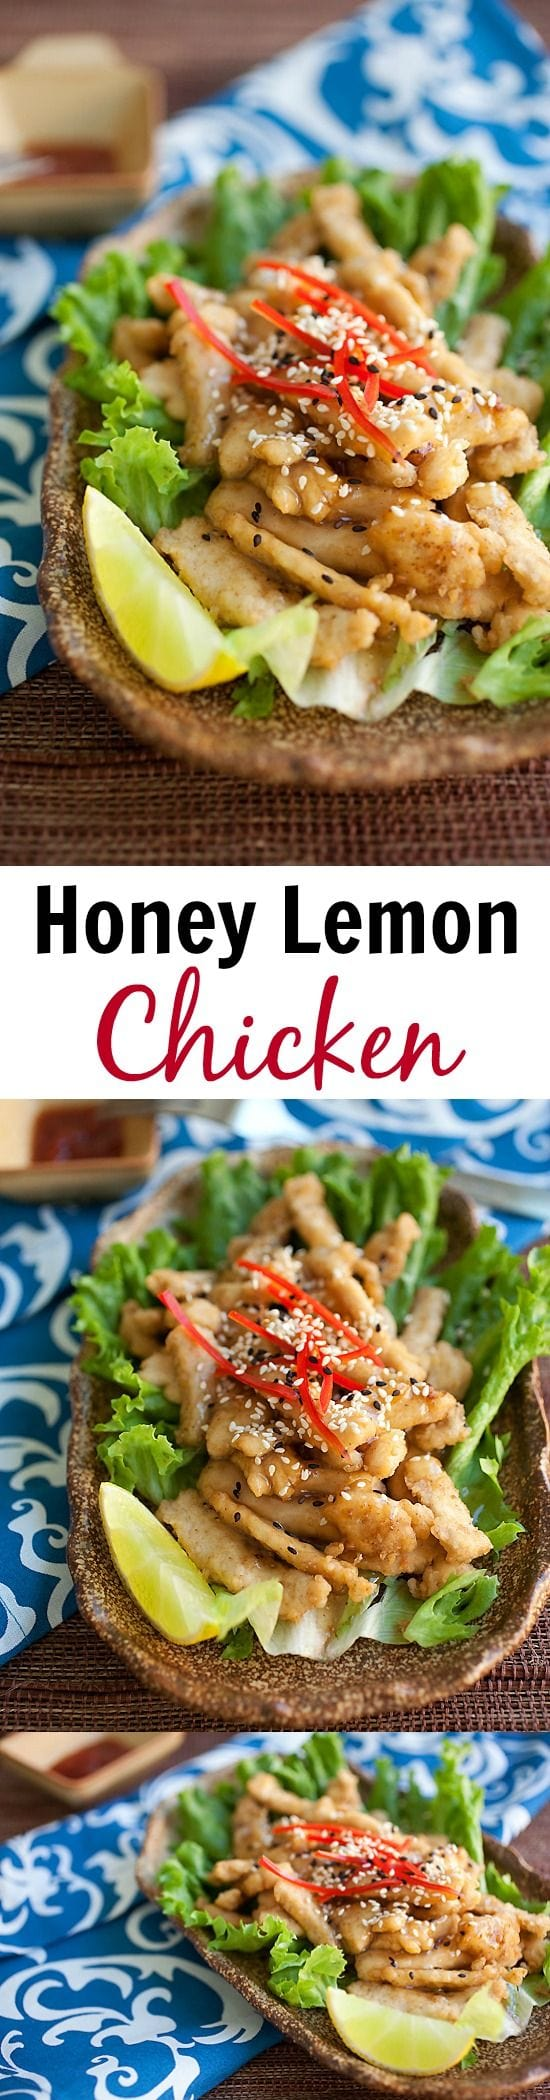 Honey Lemon Chicken – crispy chicken with the most AMAZING honey lemon sauce that is super delicious. Quick and easy recipe that anyone can make at home | rasamalaysia.com